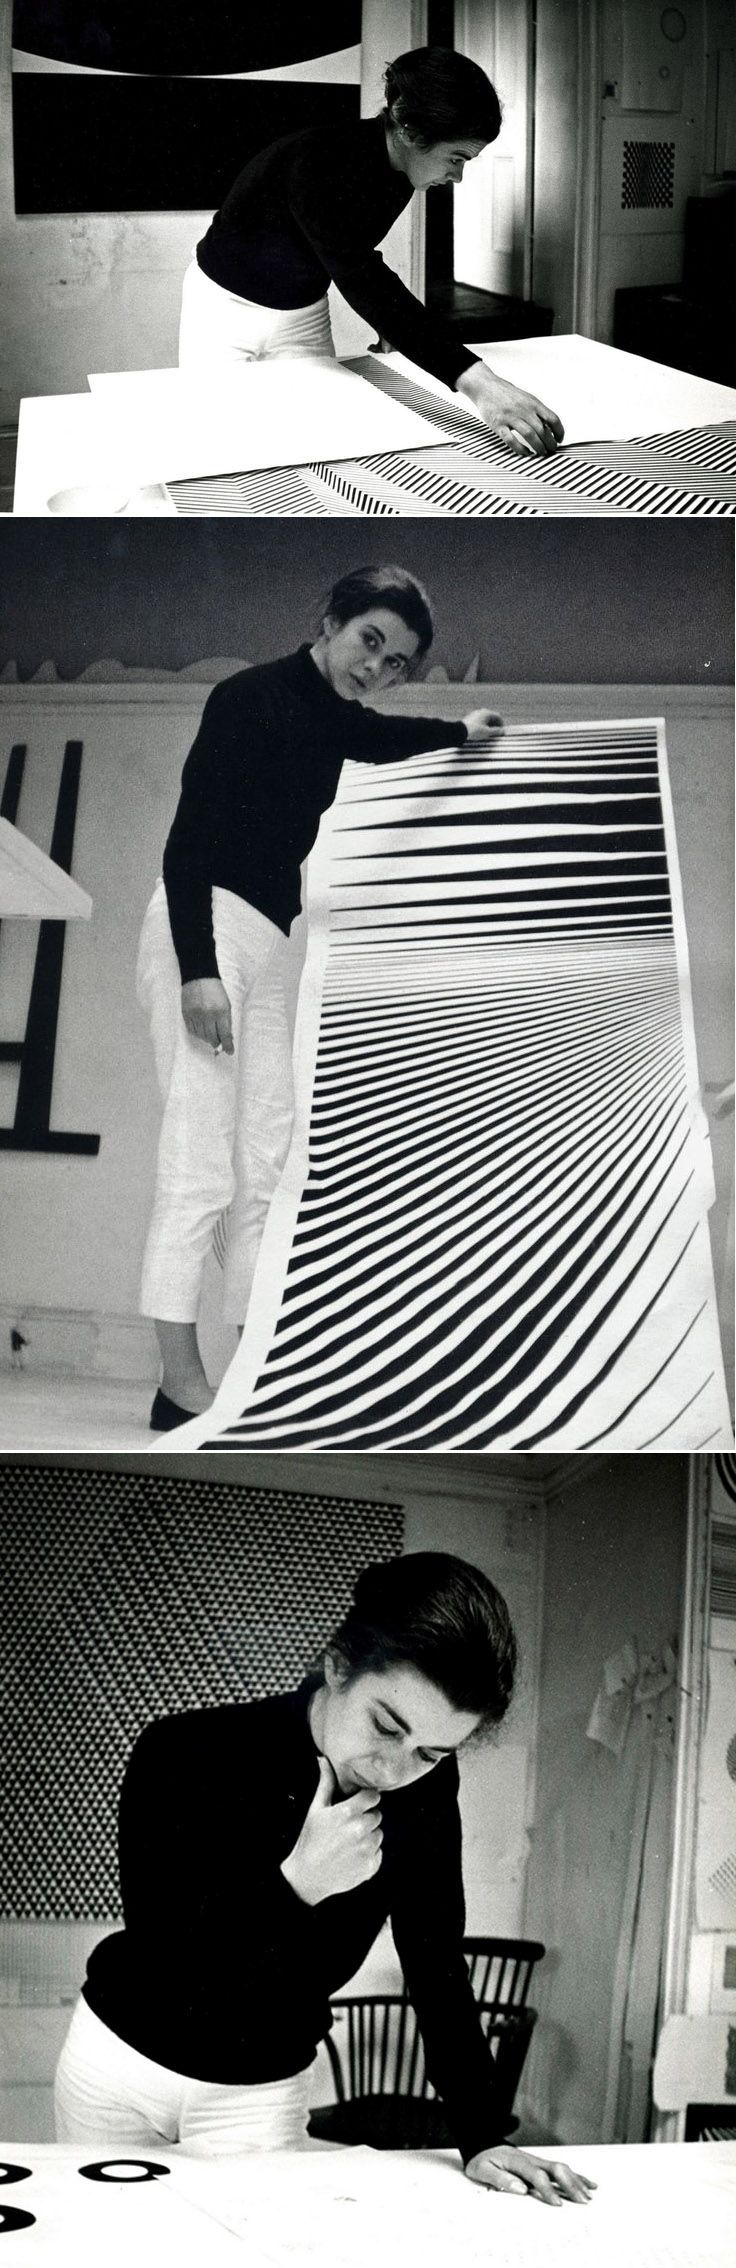 Maddie~This is Bridget Riley at work next to her artwork that she created. Now YOU Can Create Mind-Blowing Artistic Images With Top Secret Photography Tutorials With Step-By-Step Instructions! http://trick-photo-graphybook-today.blogspot.com?prod=D8HOJHcV